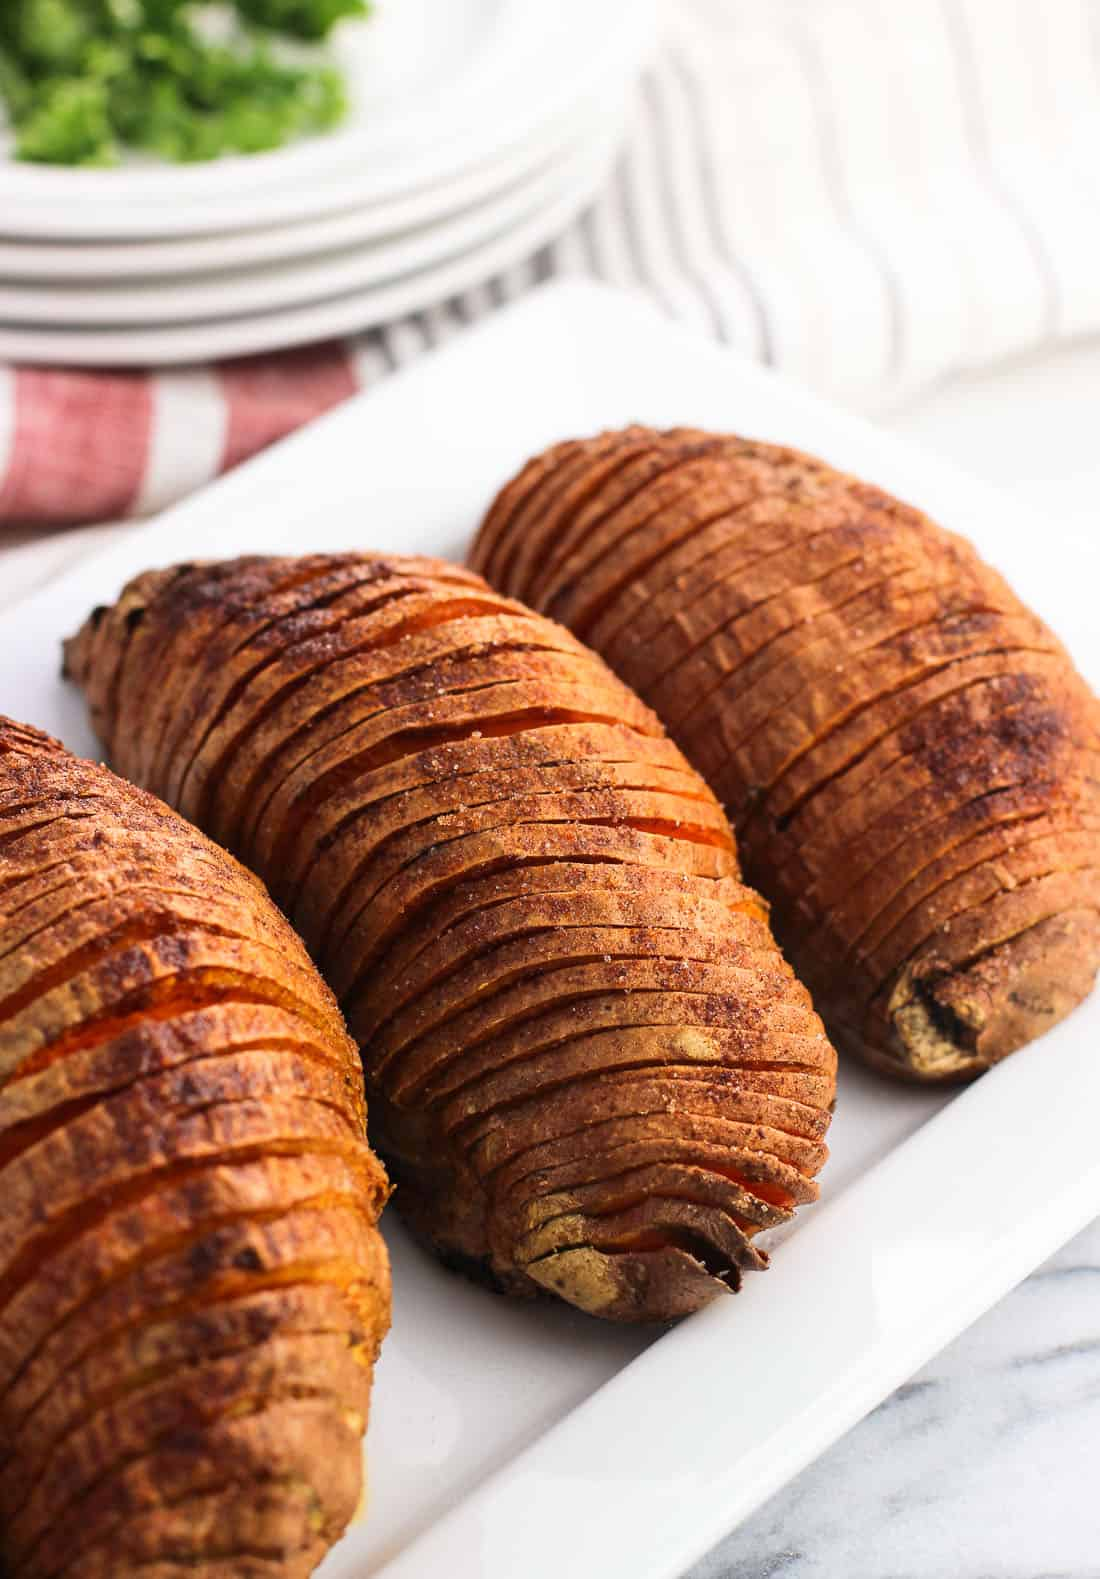 Sweet and Smoky Hasselback Sweet Potatoes make a delicious, healthy side dish. The deep slices yield potato strips similar to thin steak fries with crisper exteriors and soft middles. This seasoning is the best!